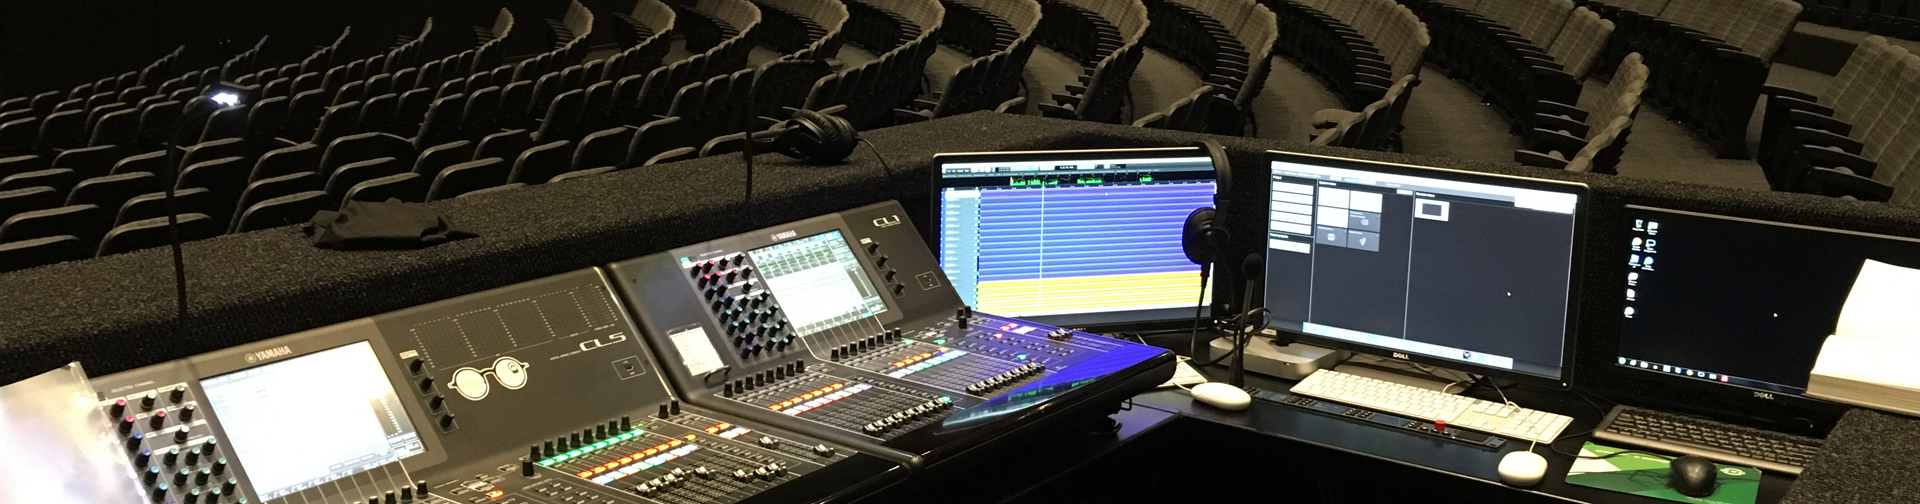 Stage Audio Works - Yamaha Consoles